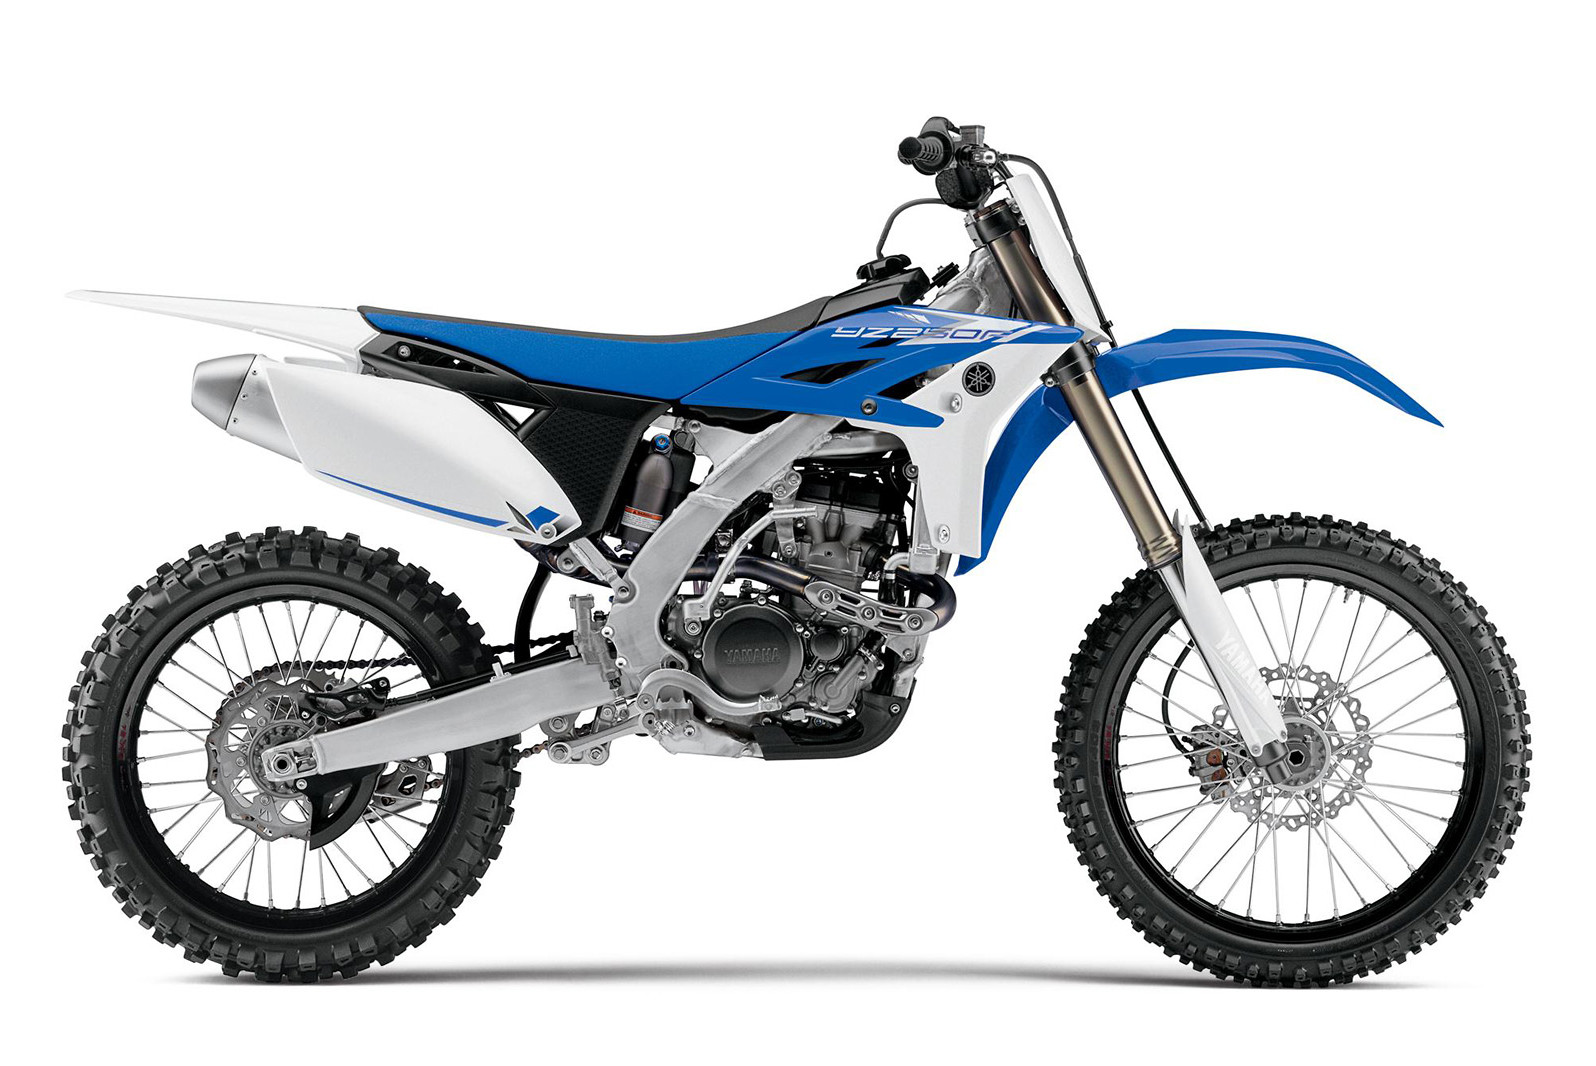 2013 yamaha yz250f reviews comparisons specs for Yamaha mini dirt bikes